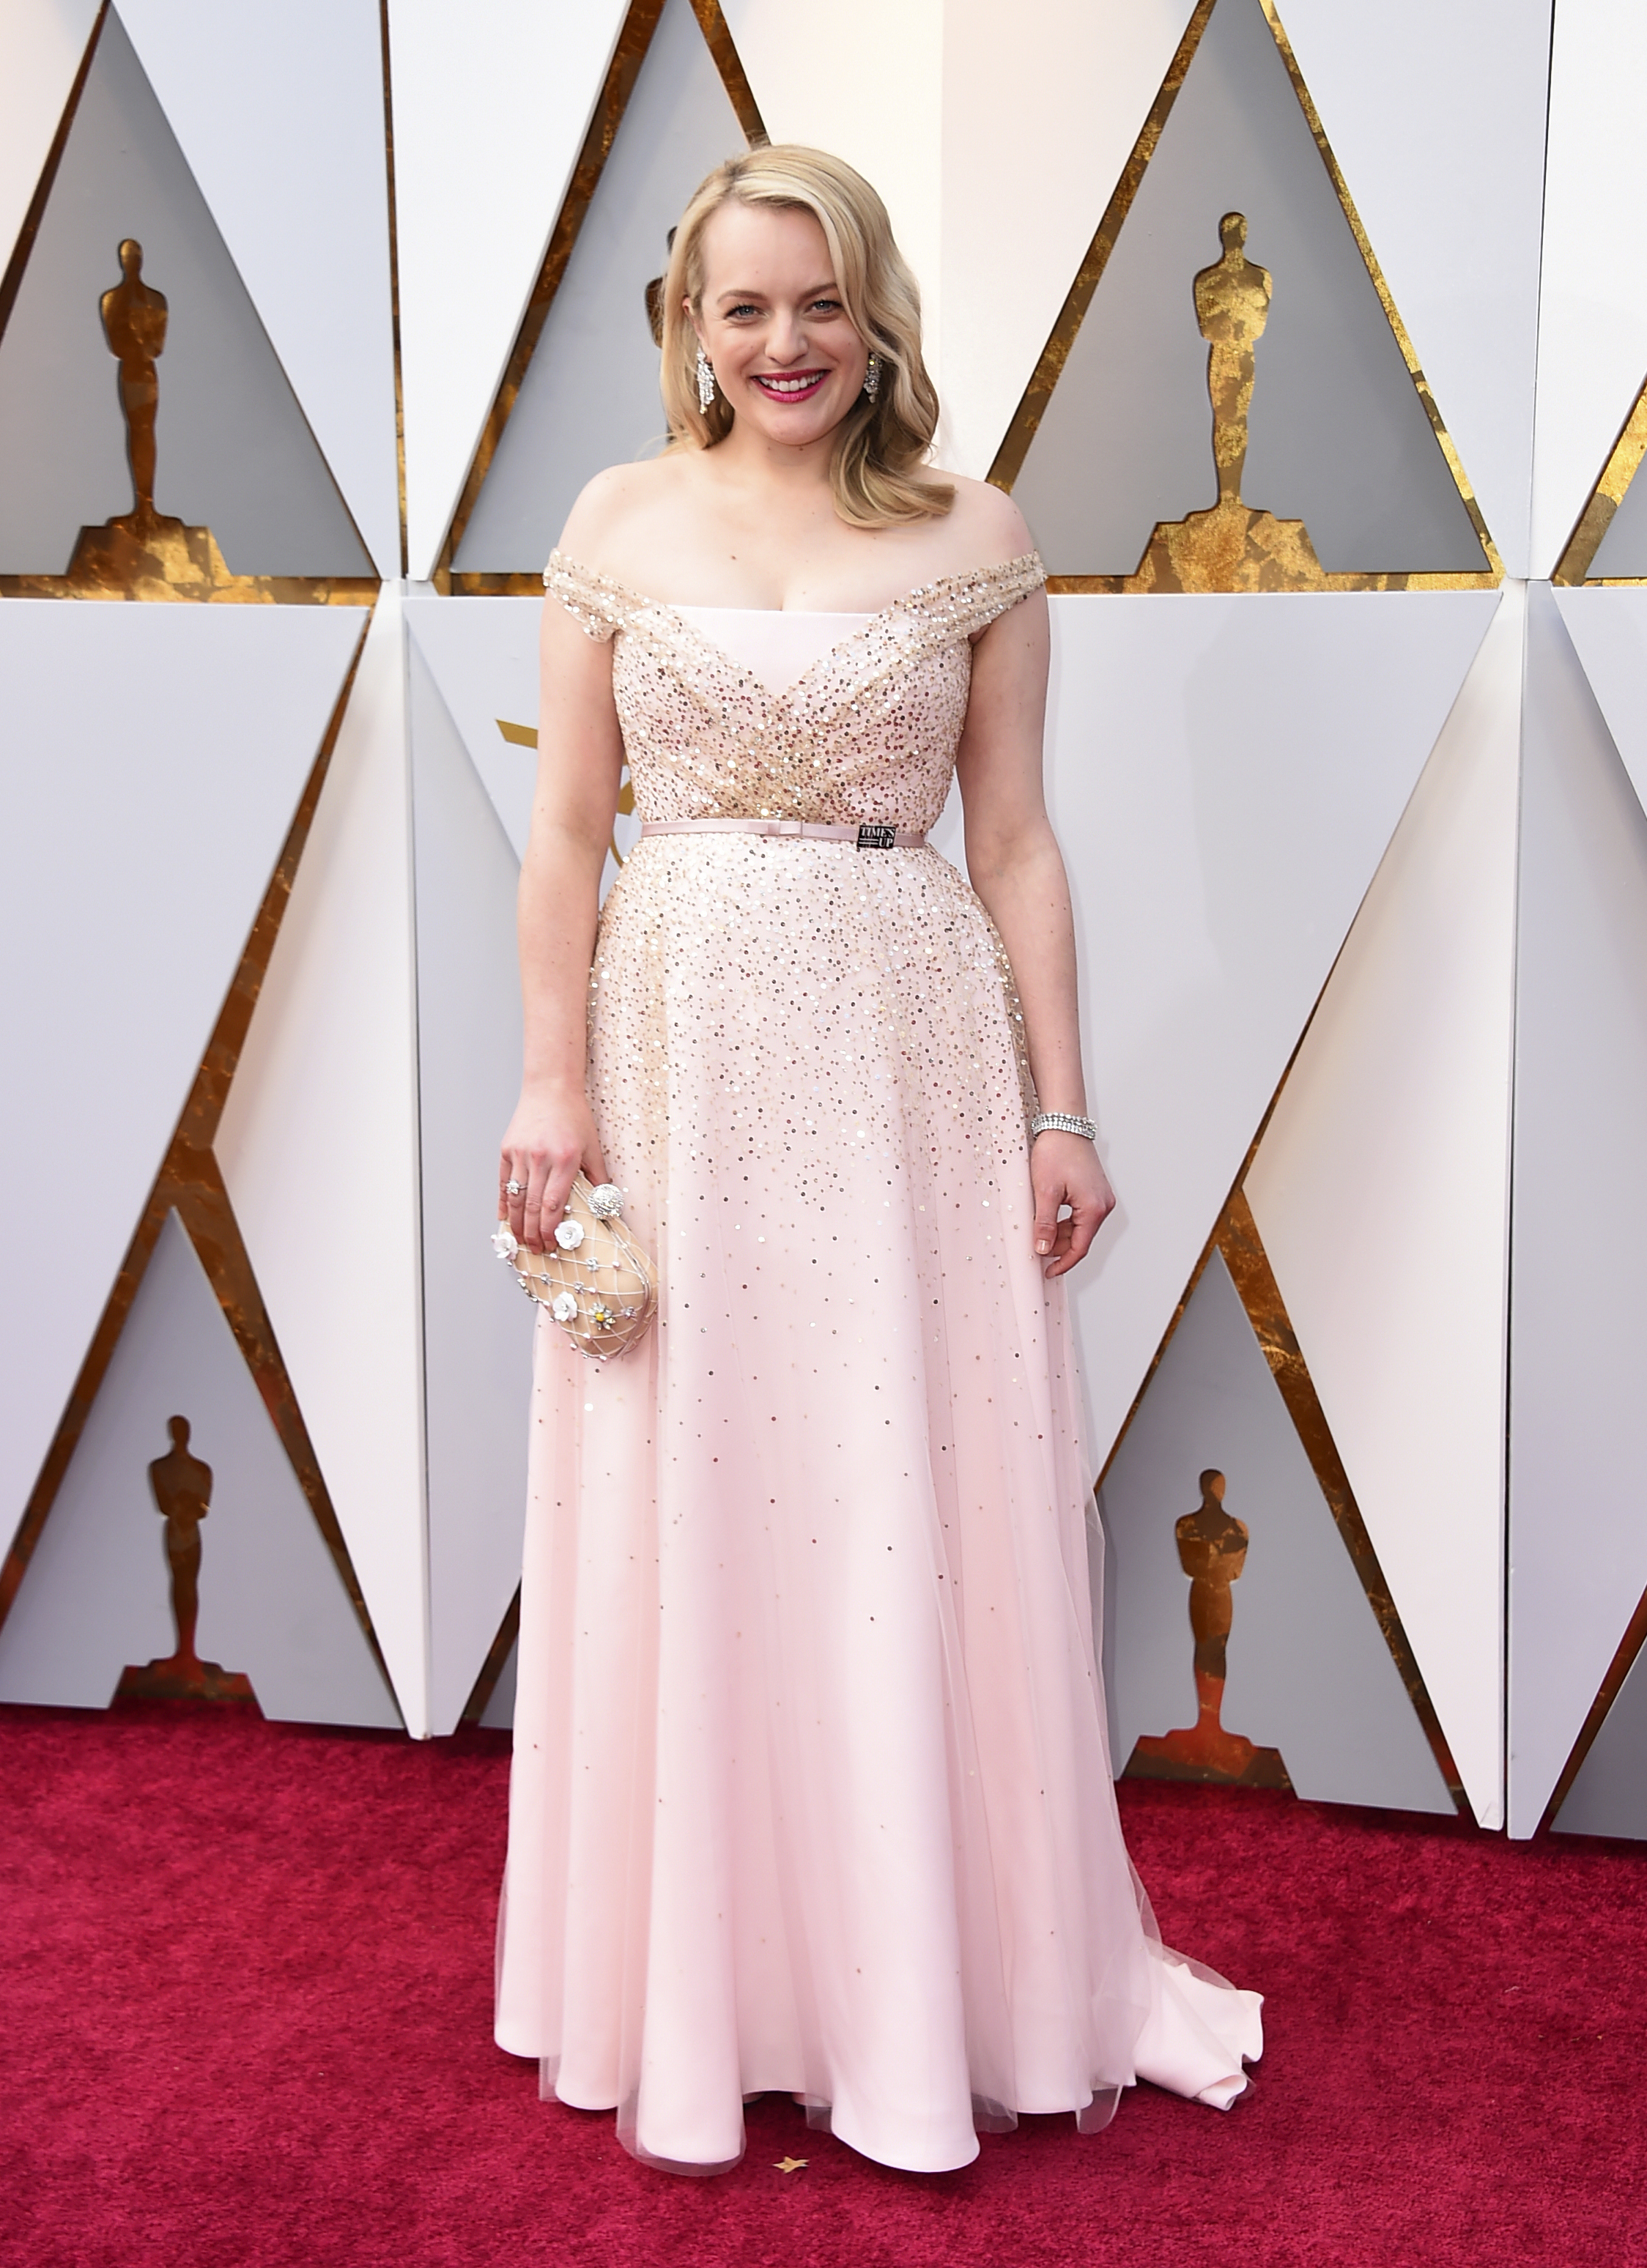 <div class='meta'><div class='origin-logo' data-origin='none'></div><span class='caption-text' data-credit='Jordan Strauss/Invision/AP'>Elisabeth Moss arrives at the Oscars on Sunday, March 4, 2018, at the Dolby Theatre in Los Angeles.</span></div>